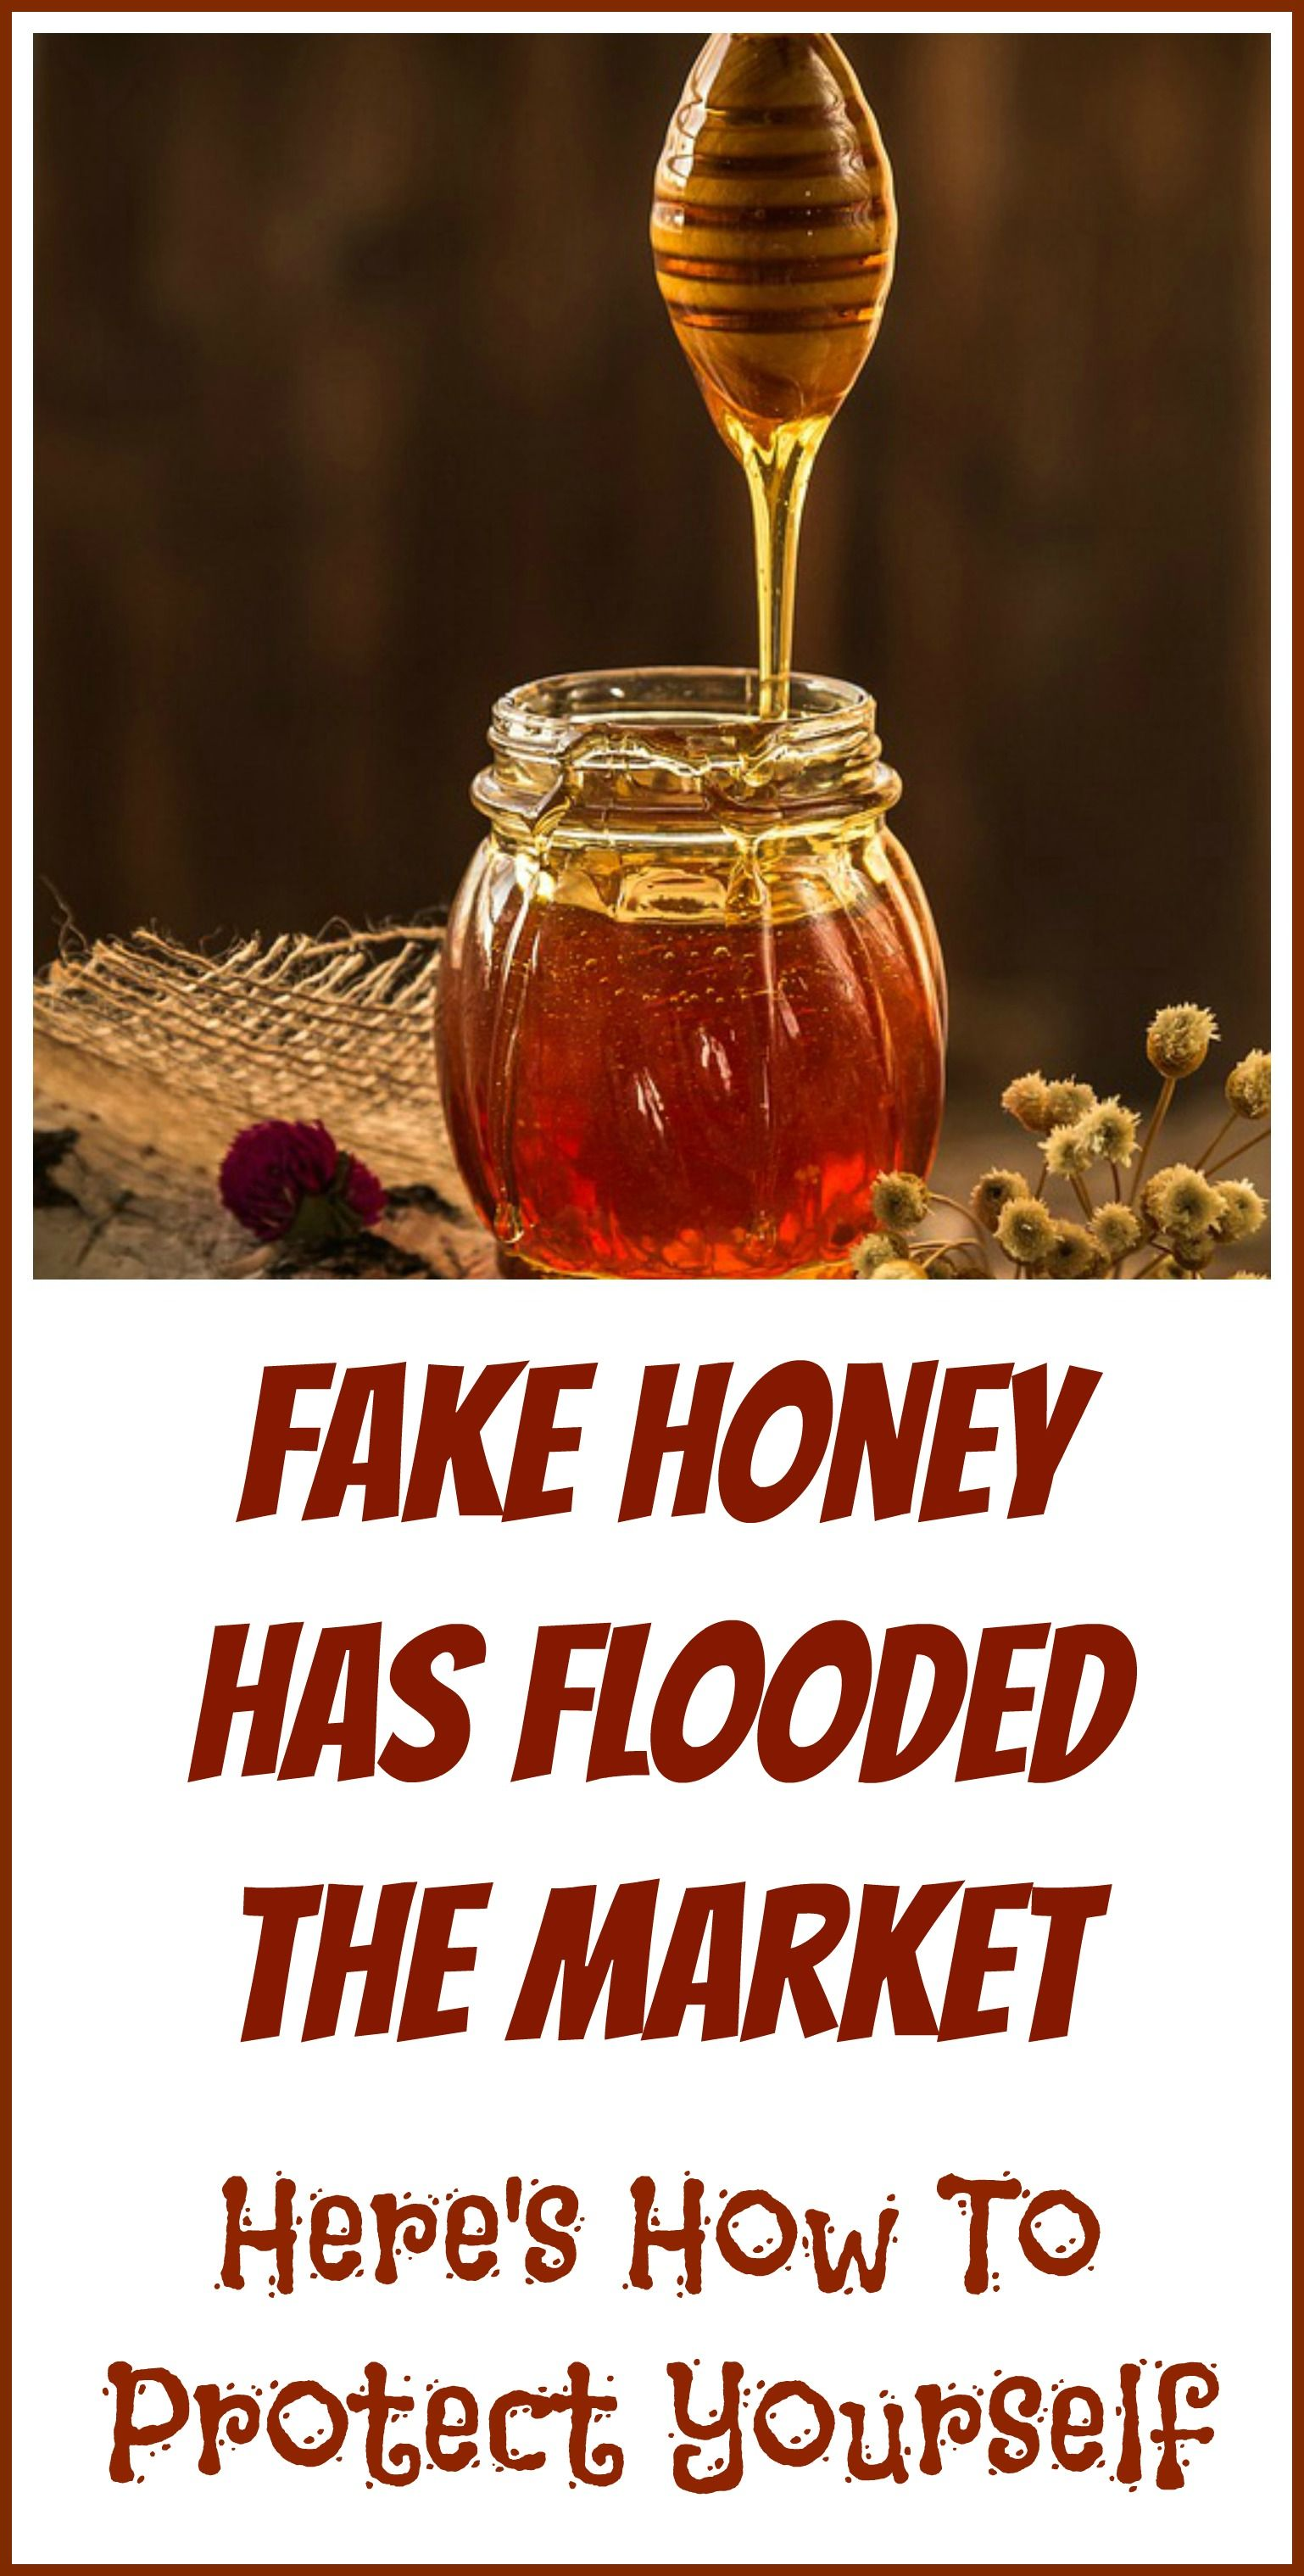 Popular Honey Brands That May Be Toxic | Healing with Herbal